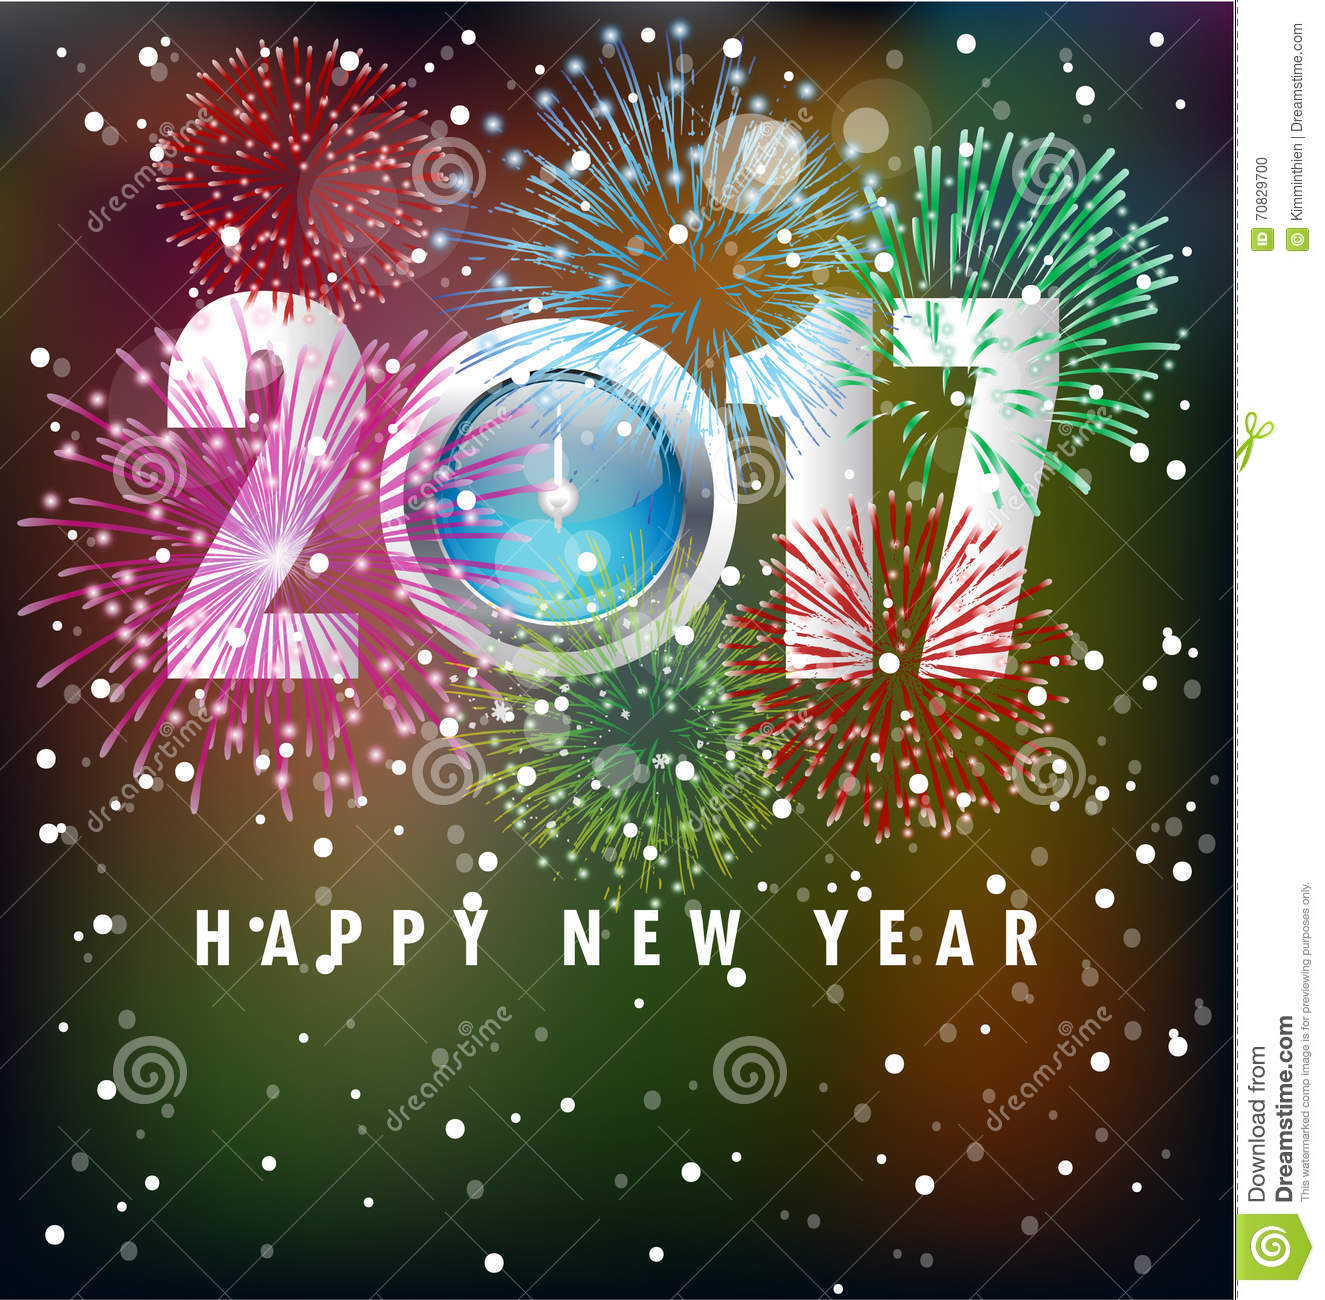 Happy new year greeting card 2017 stock illustration illustration happy new year greeting card 2017 astrological rectangle royalty free illustration m4hsunfo